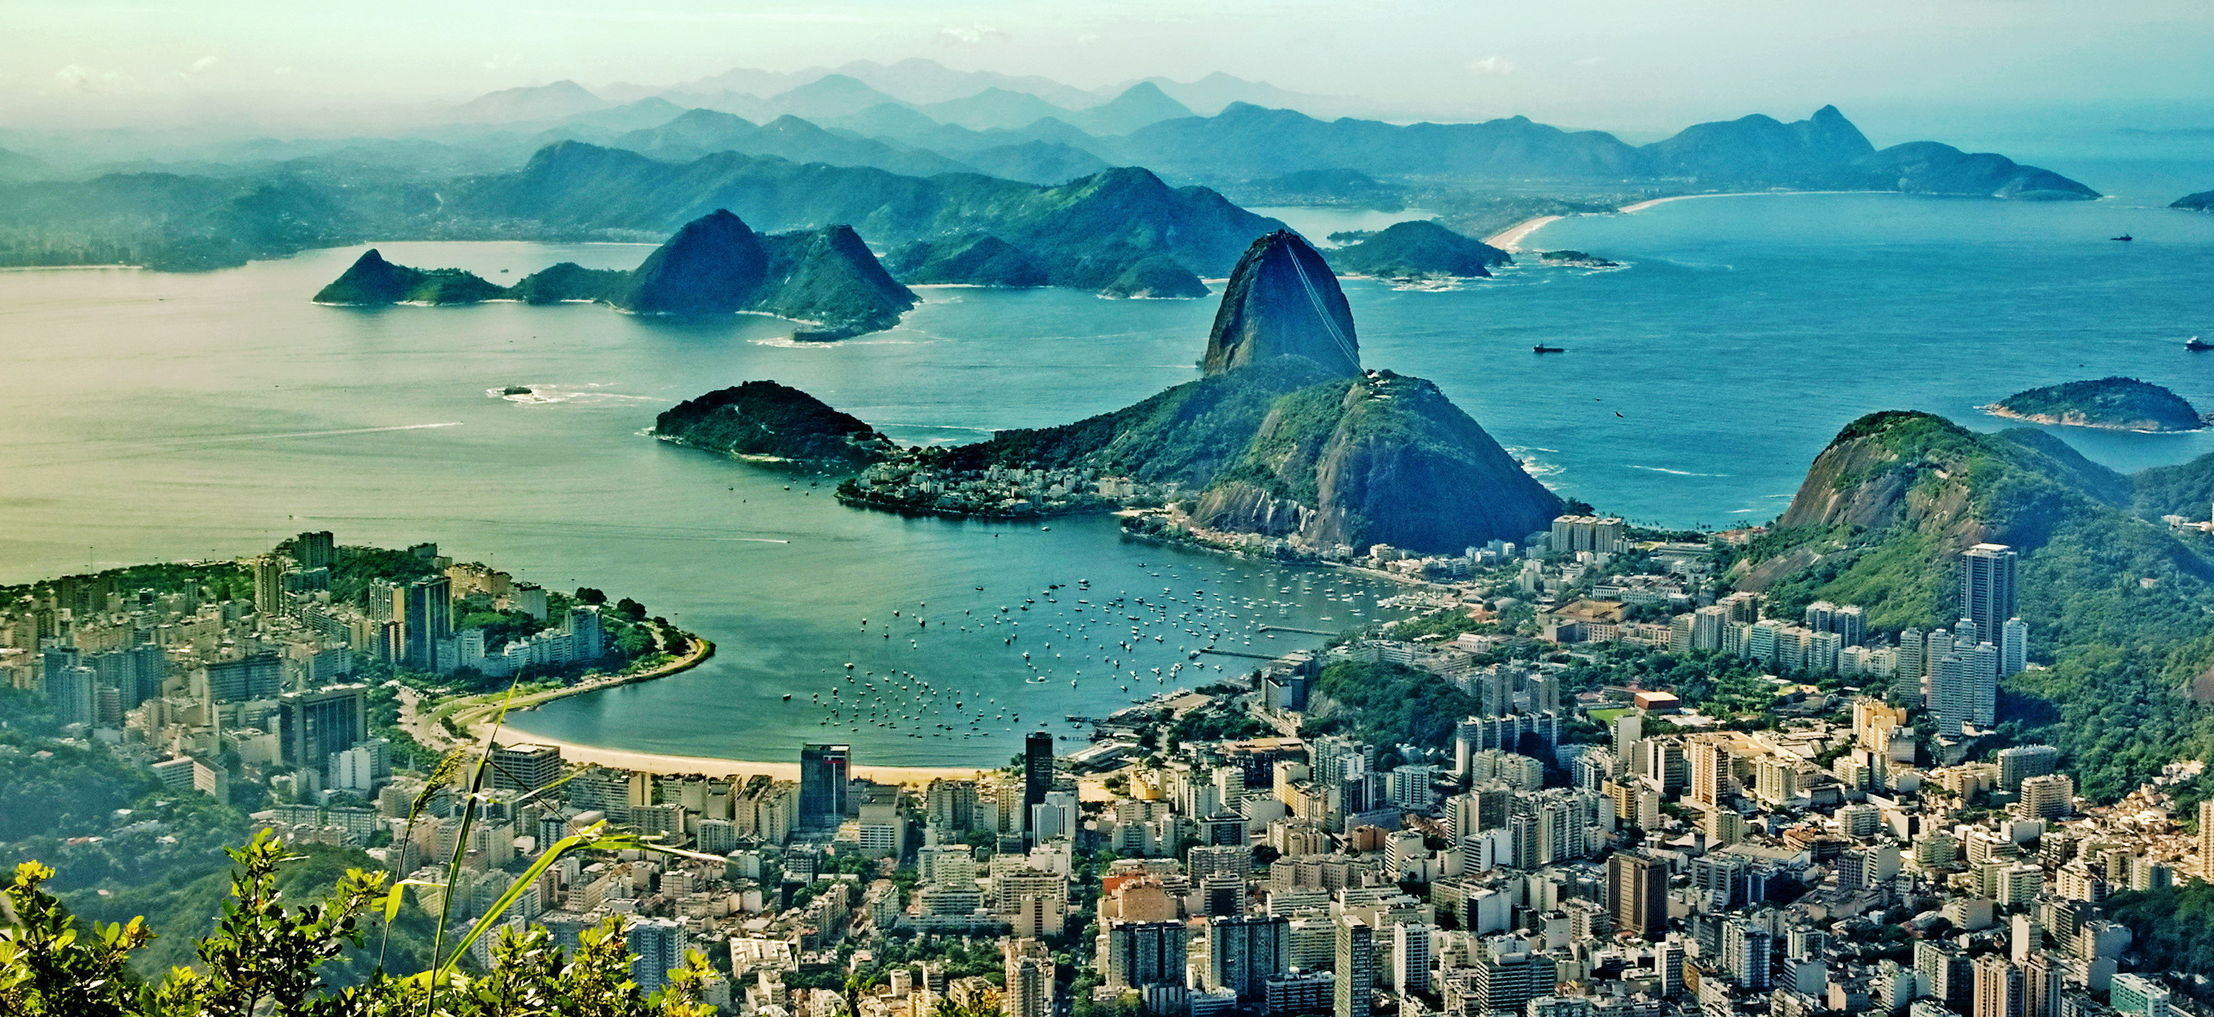 rio de janeiro wallpapers images photos pictures backgrounds